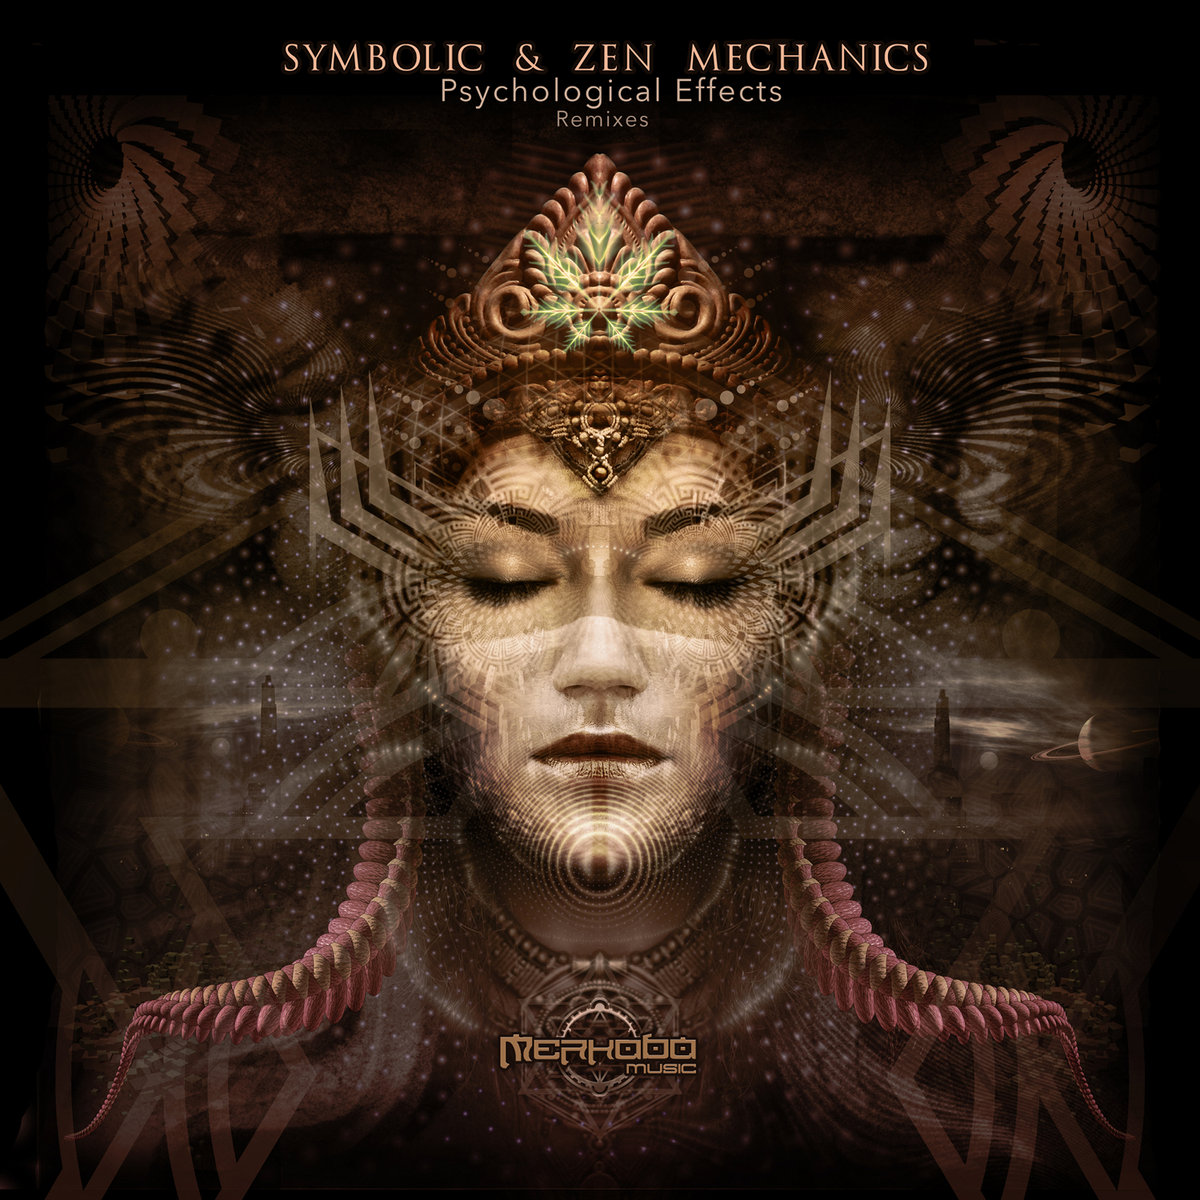 Symbolic & Zen Mechanics - Psychological Effects (Kaminanda Remix) @ 'Psychological Effects - Remixes' album (electronic, future bass)